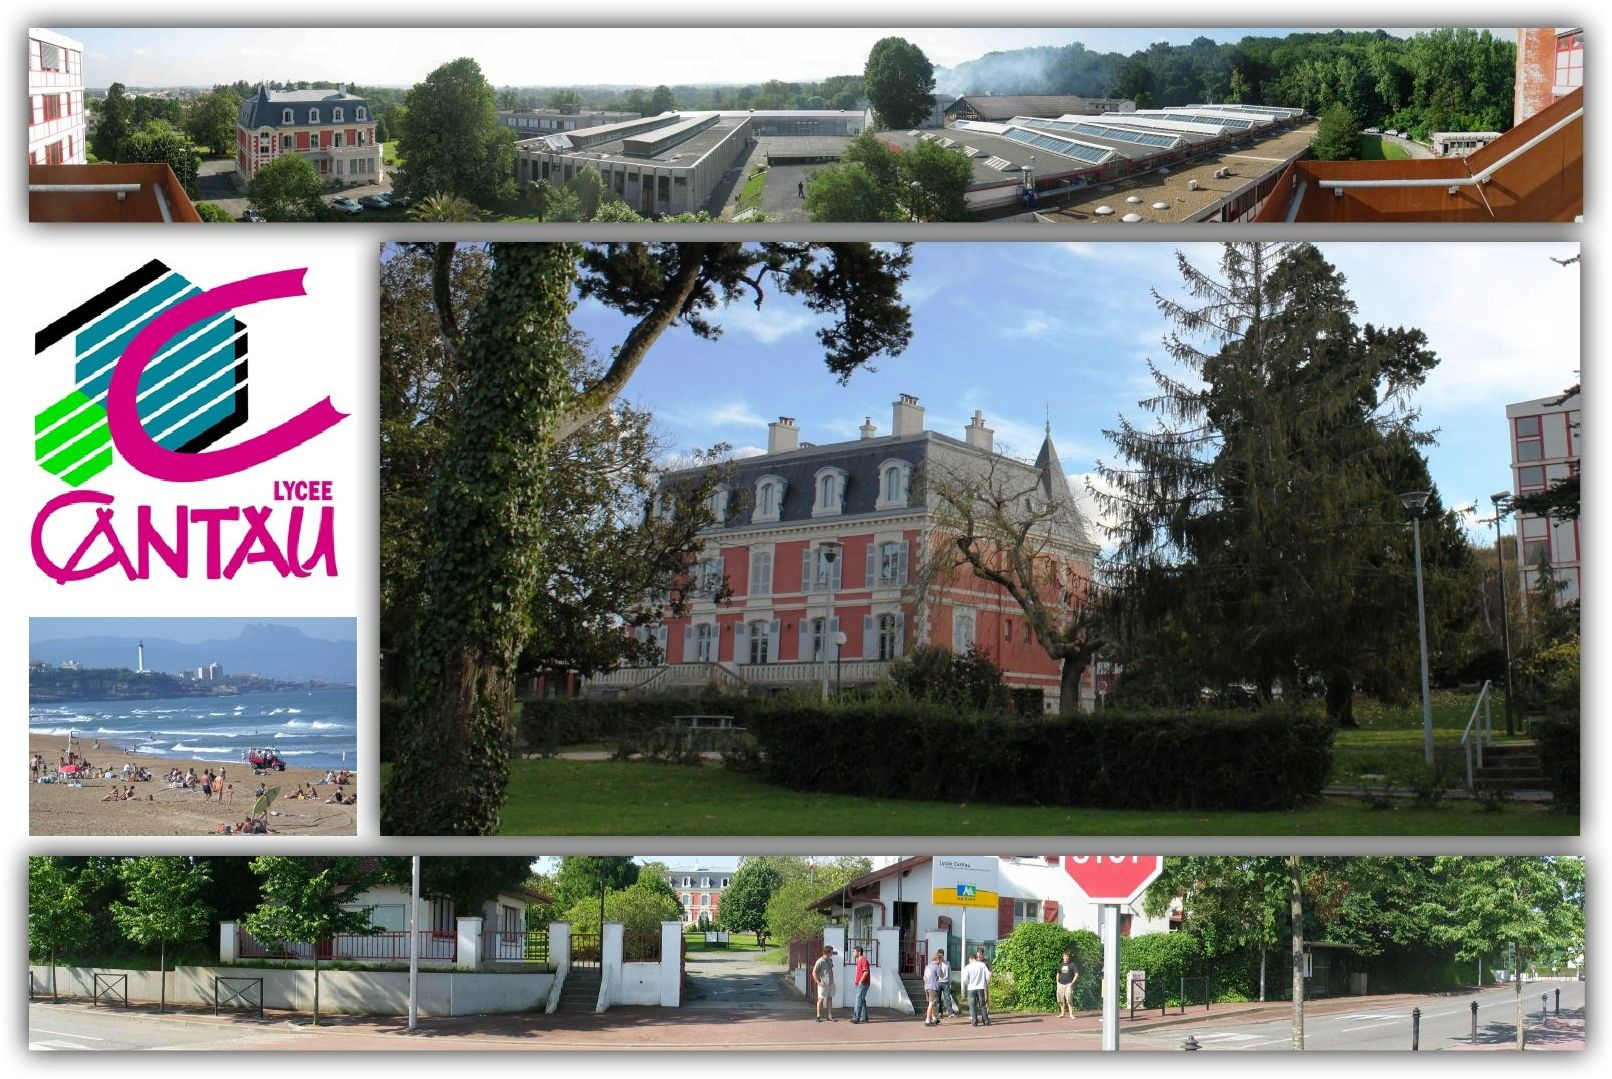 les rencontres amicales a anglet